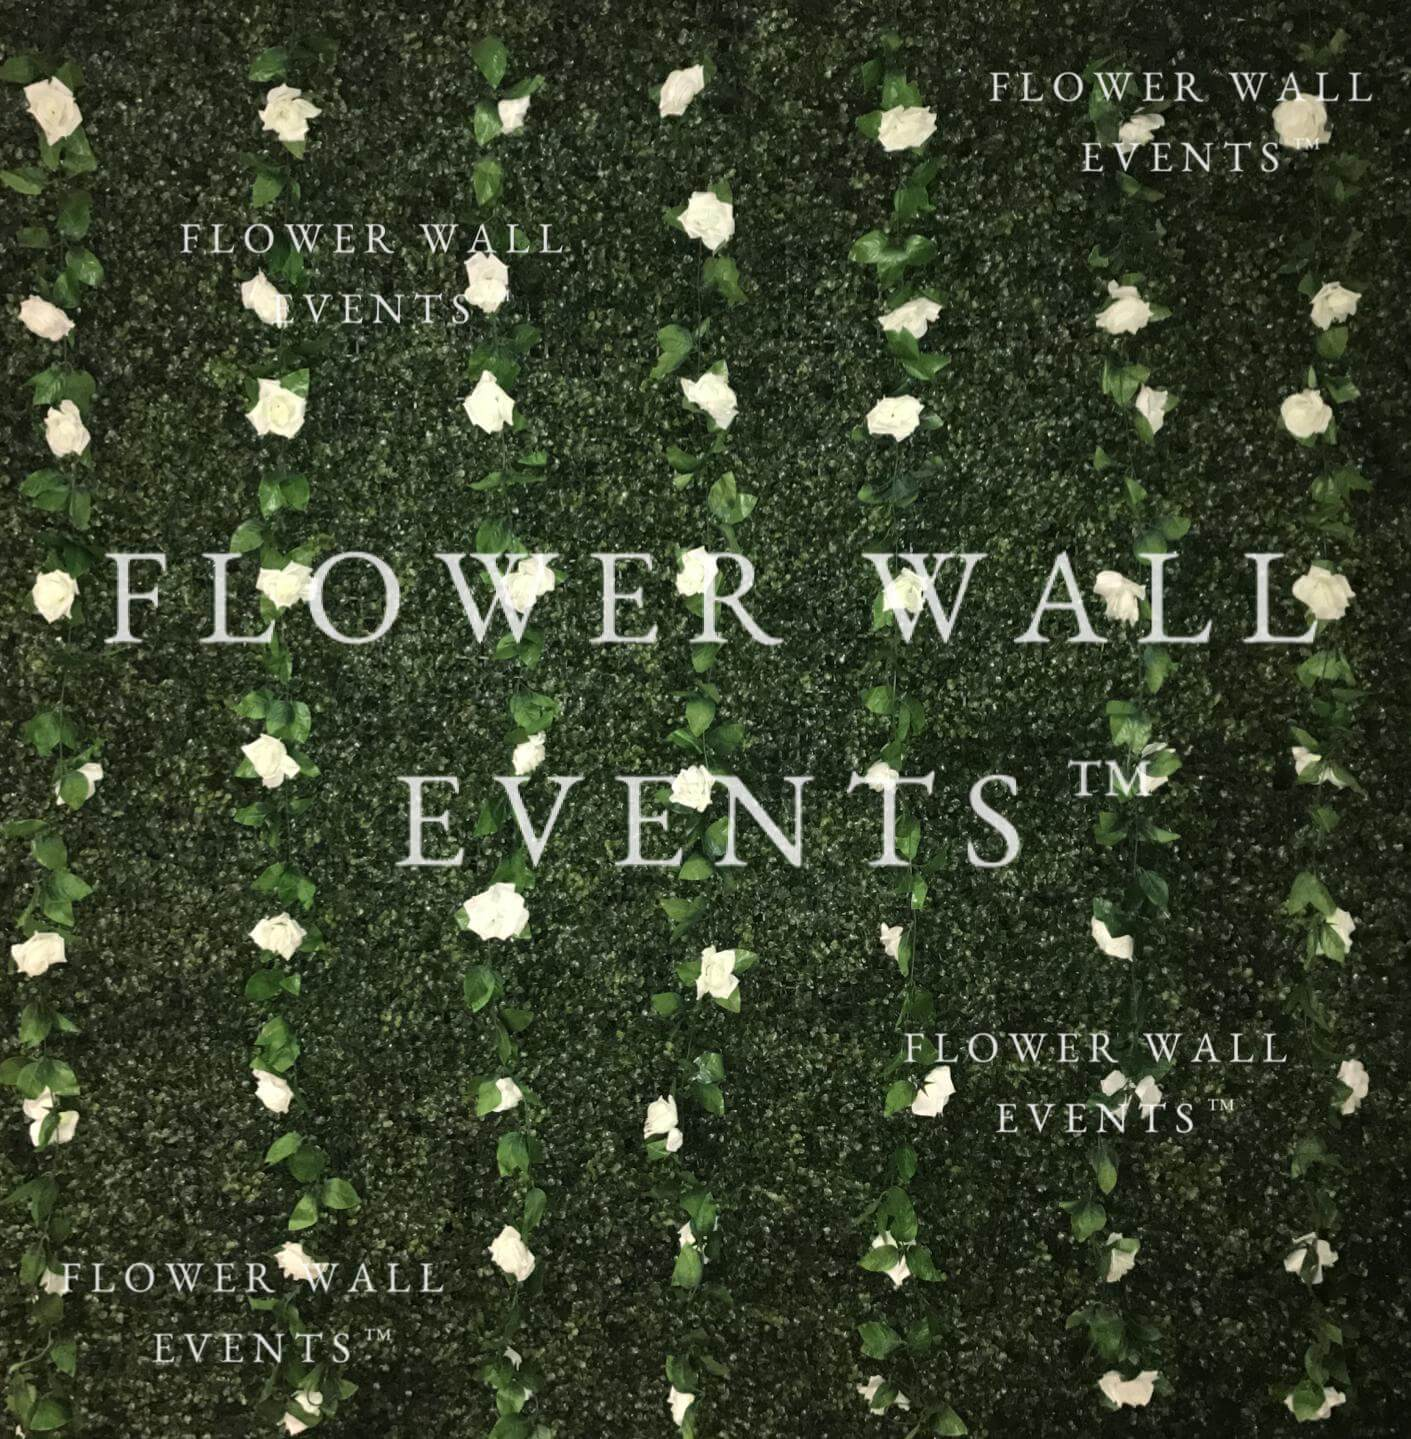 flower wall hire melbourne white roses